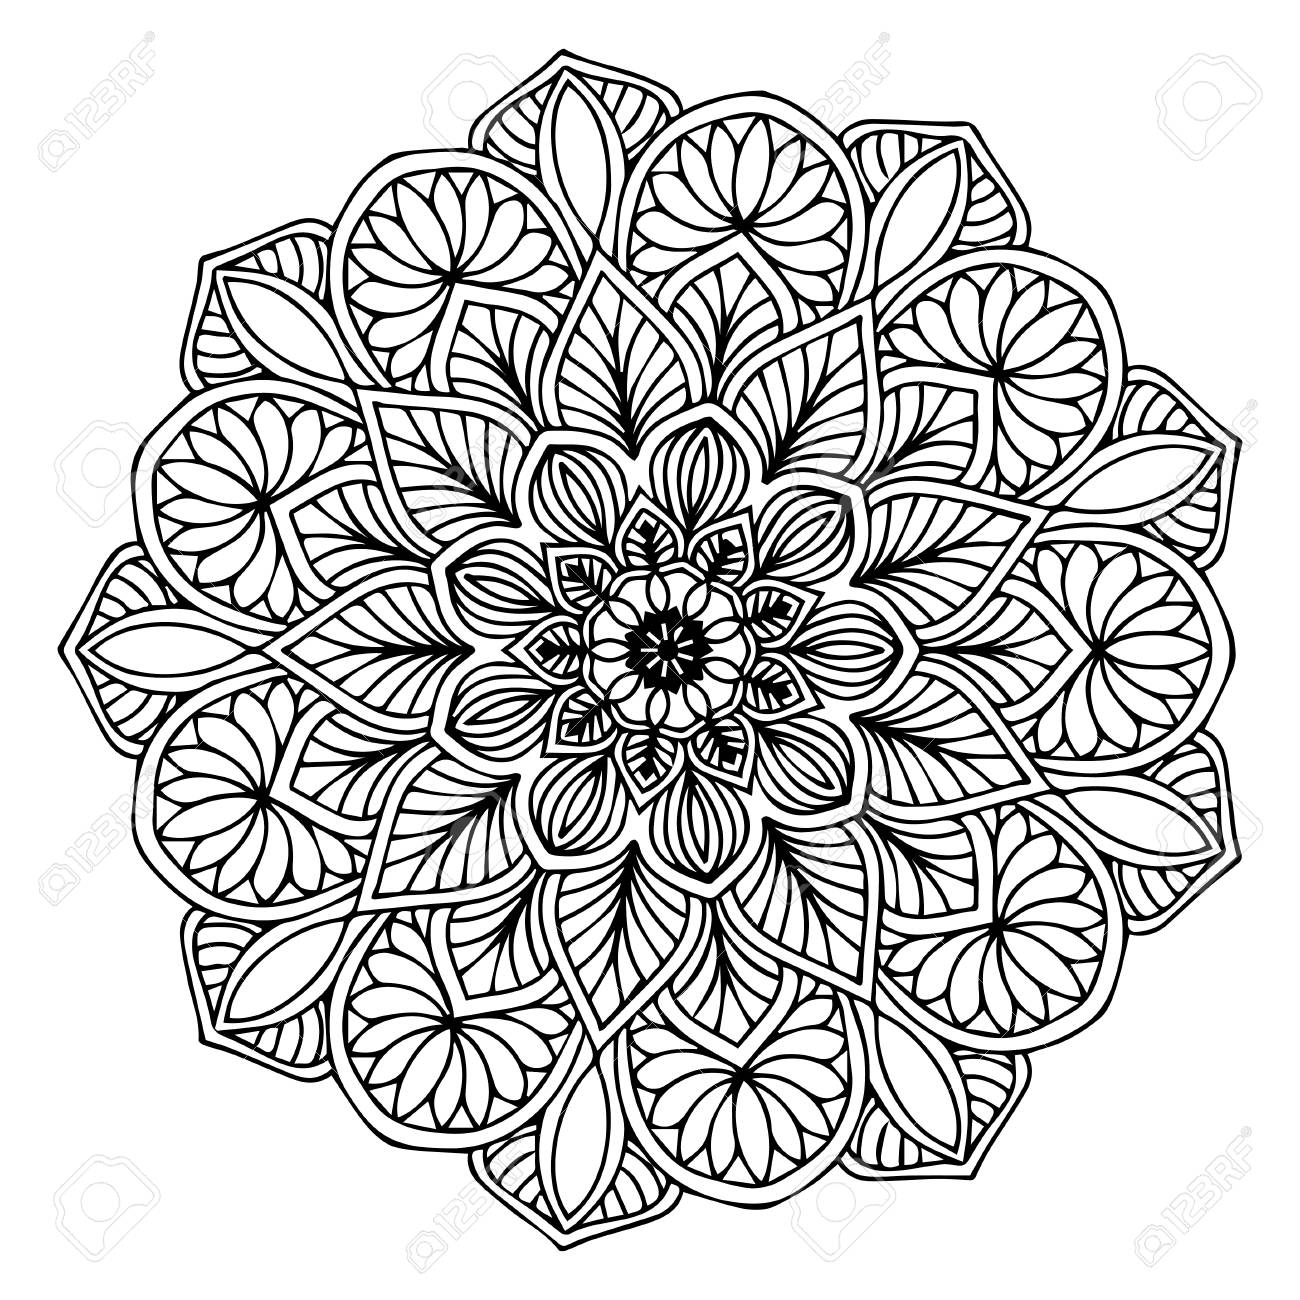 Mandalas for coloring book. Decorative round ornaments. Unusual flower shape. Oriental vector, Anti-stress therapy patterns. Weave design elements. Yoga logos Vector. - 102145724